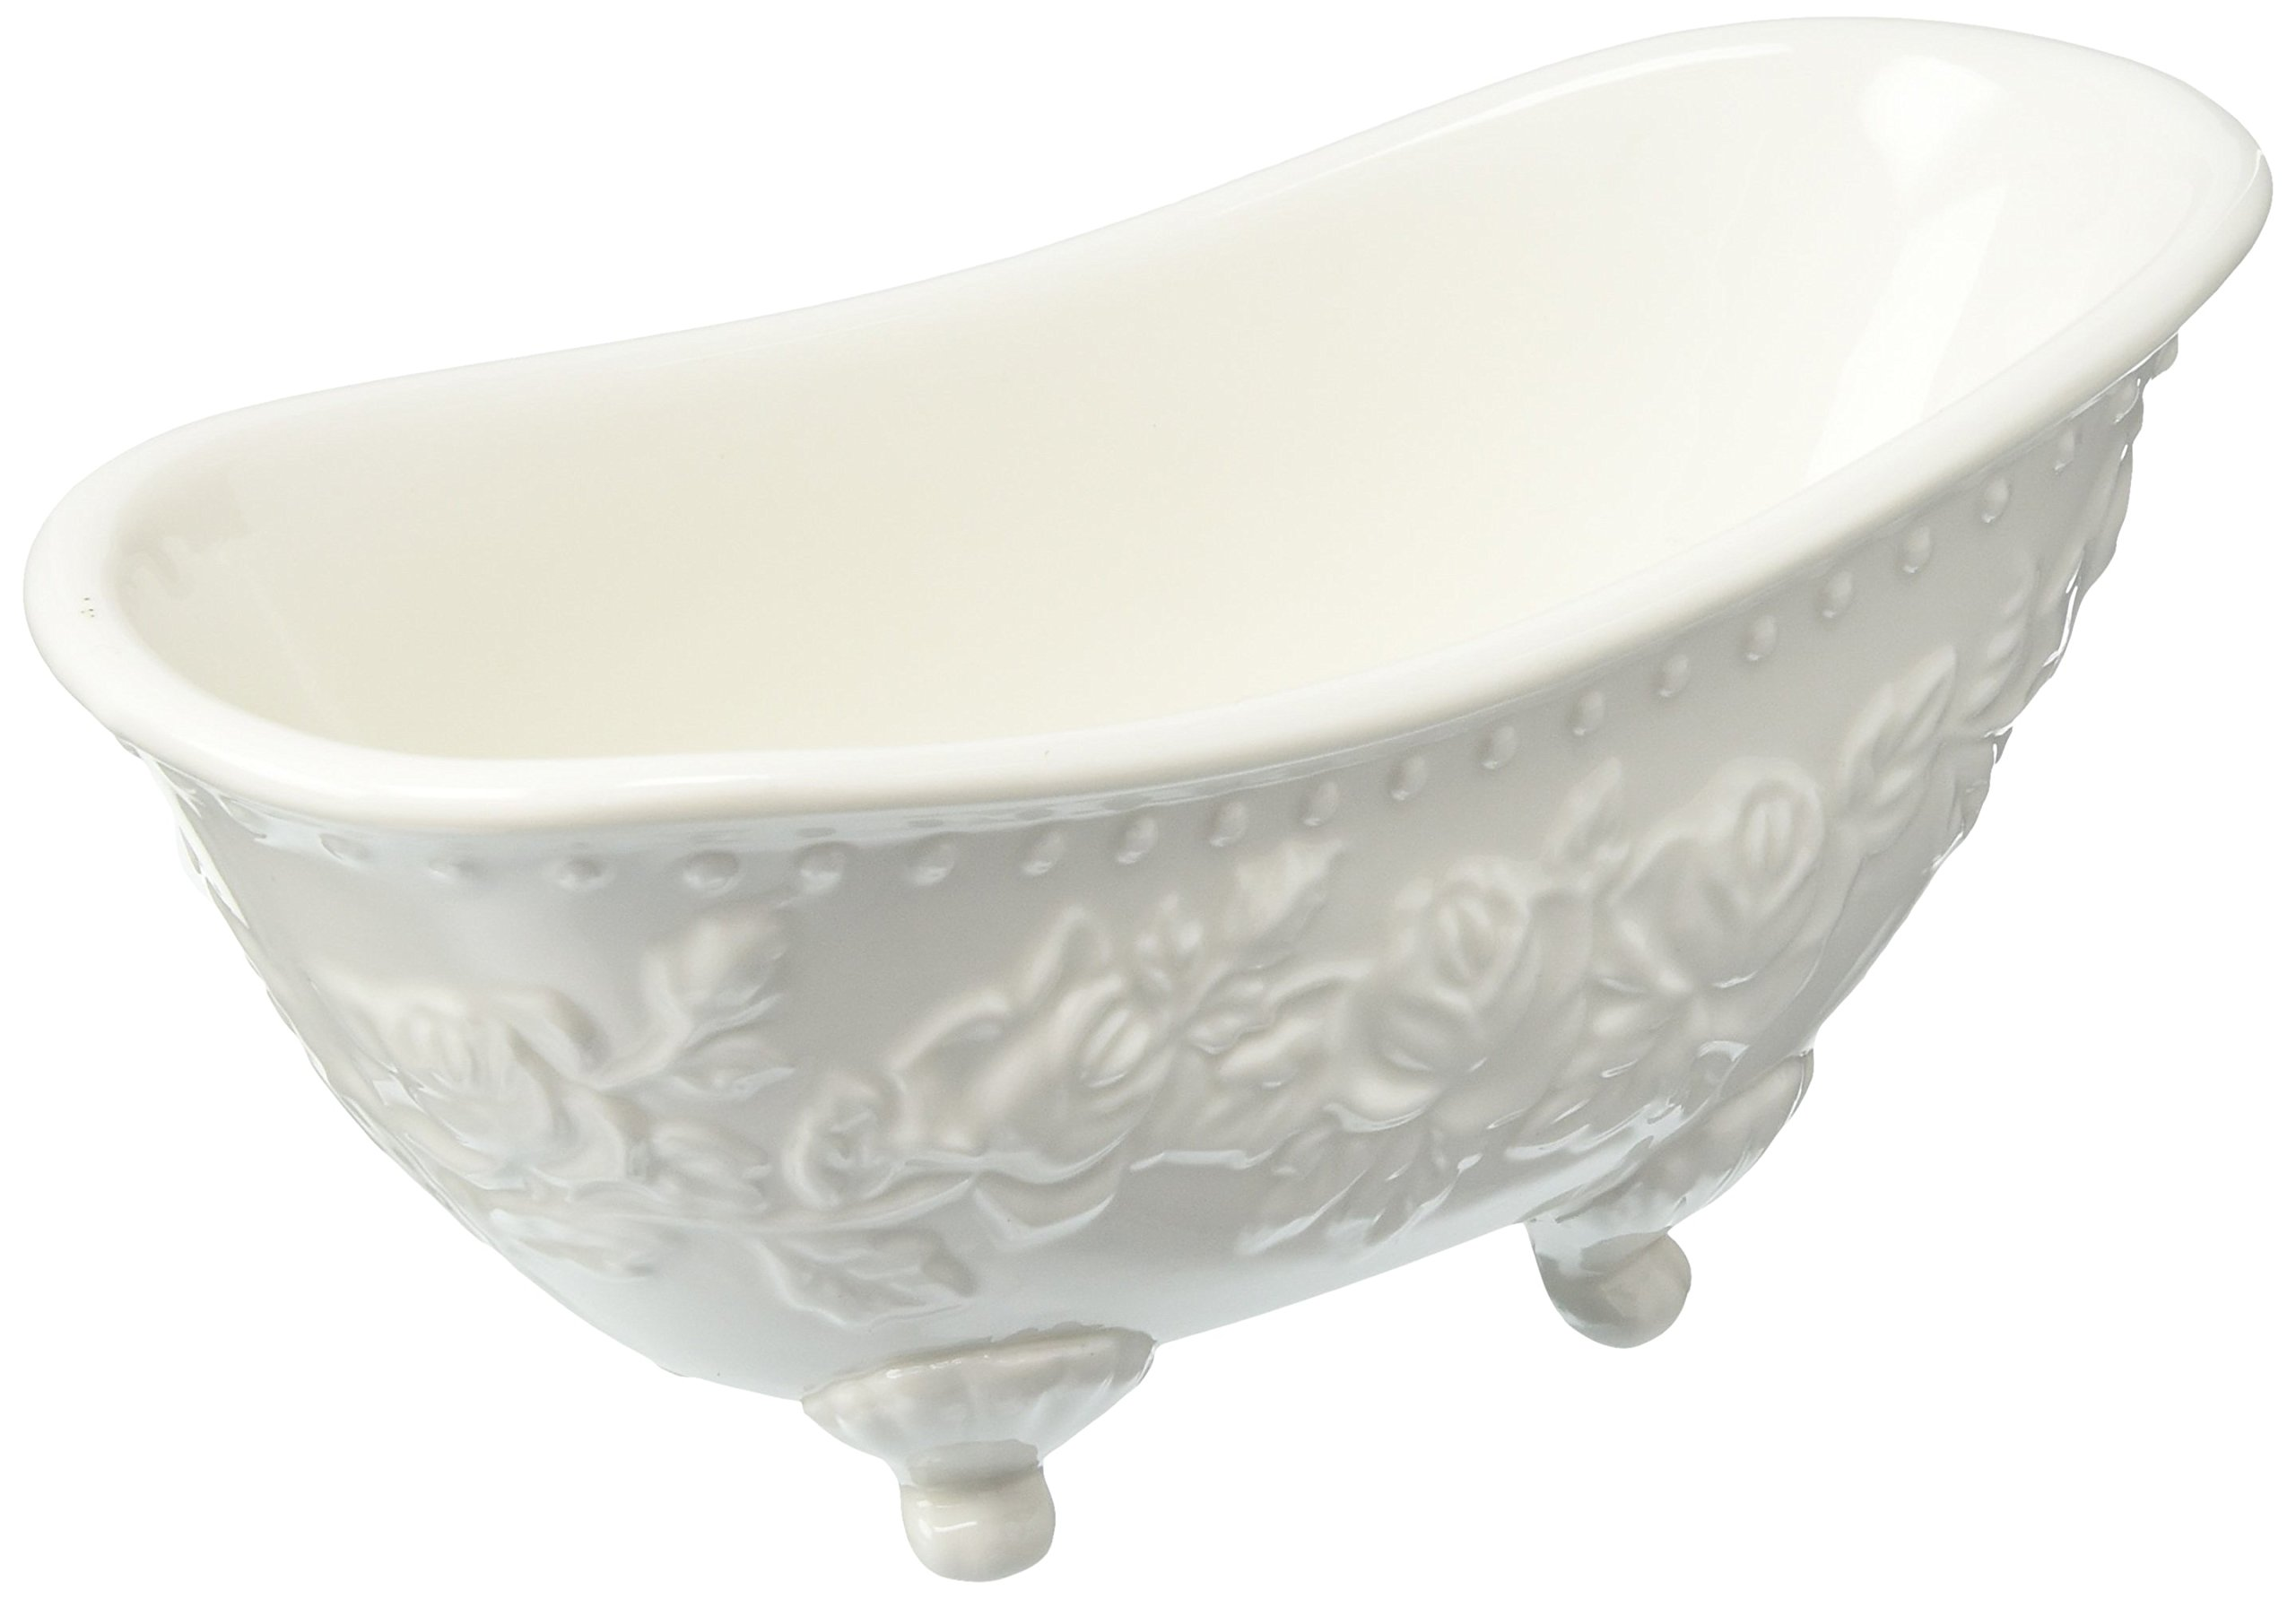 Abbott Collection Bathtub Soap Dish, White by Abbott Collection (Image #1)